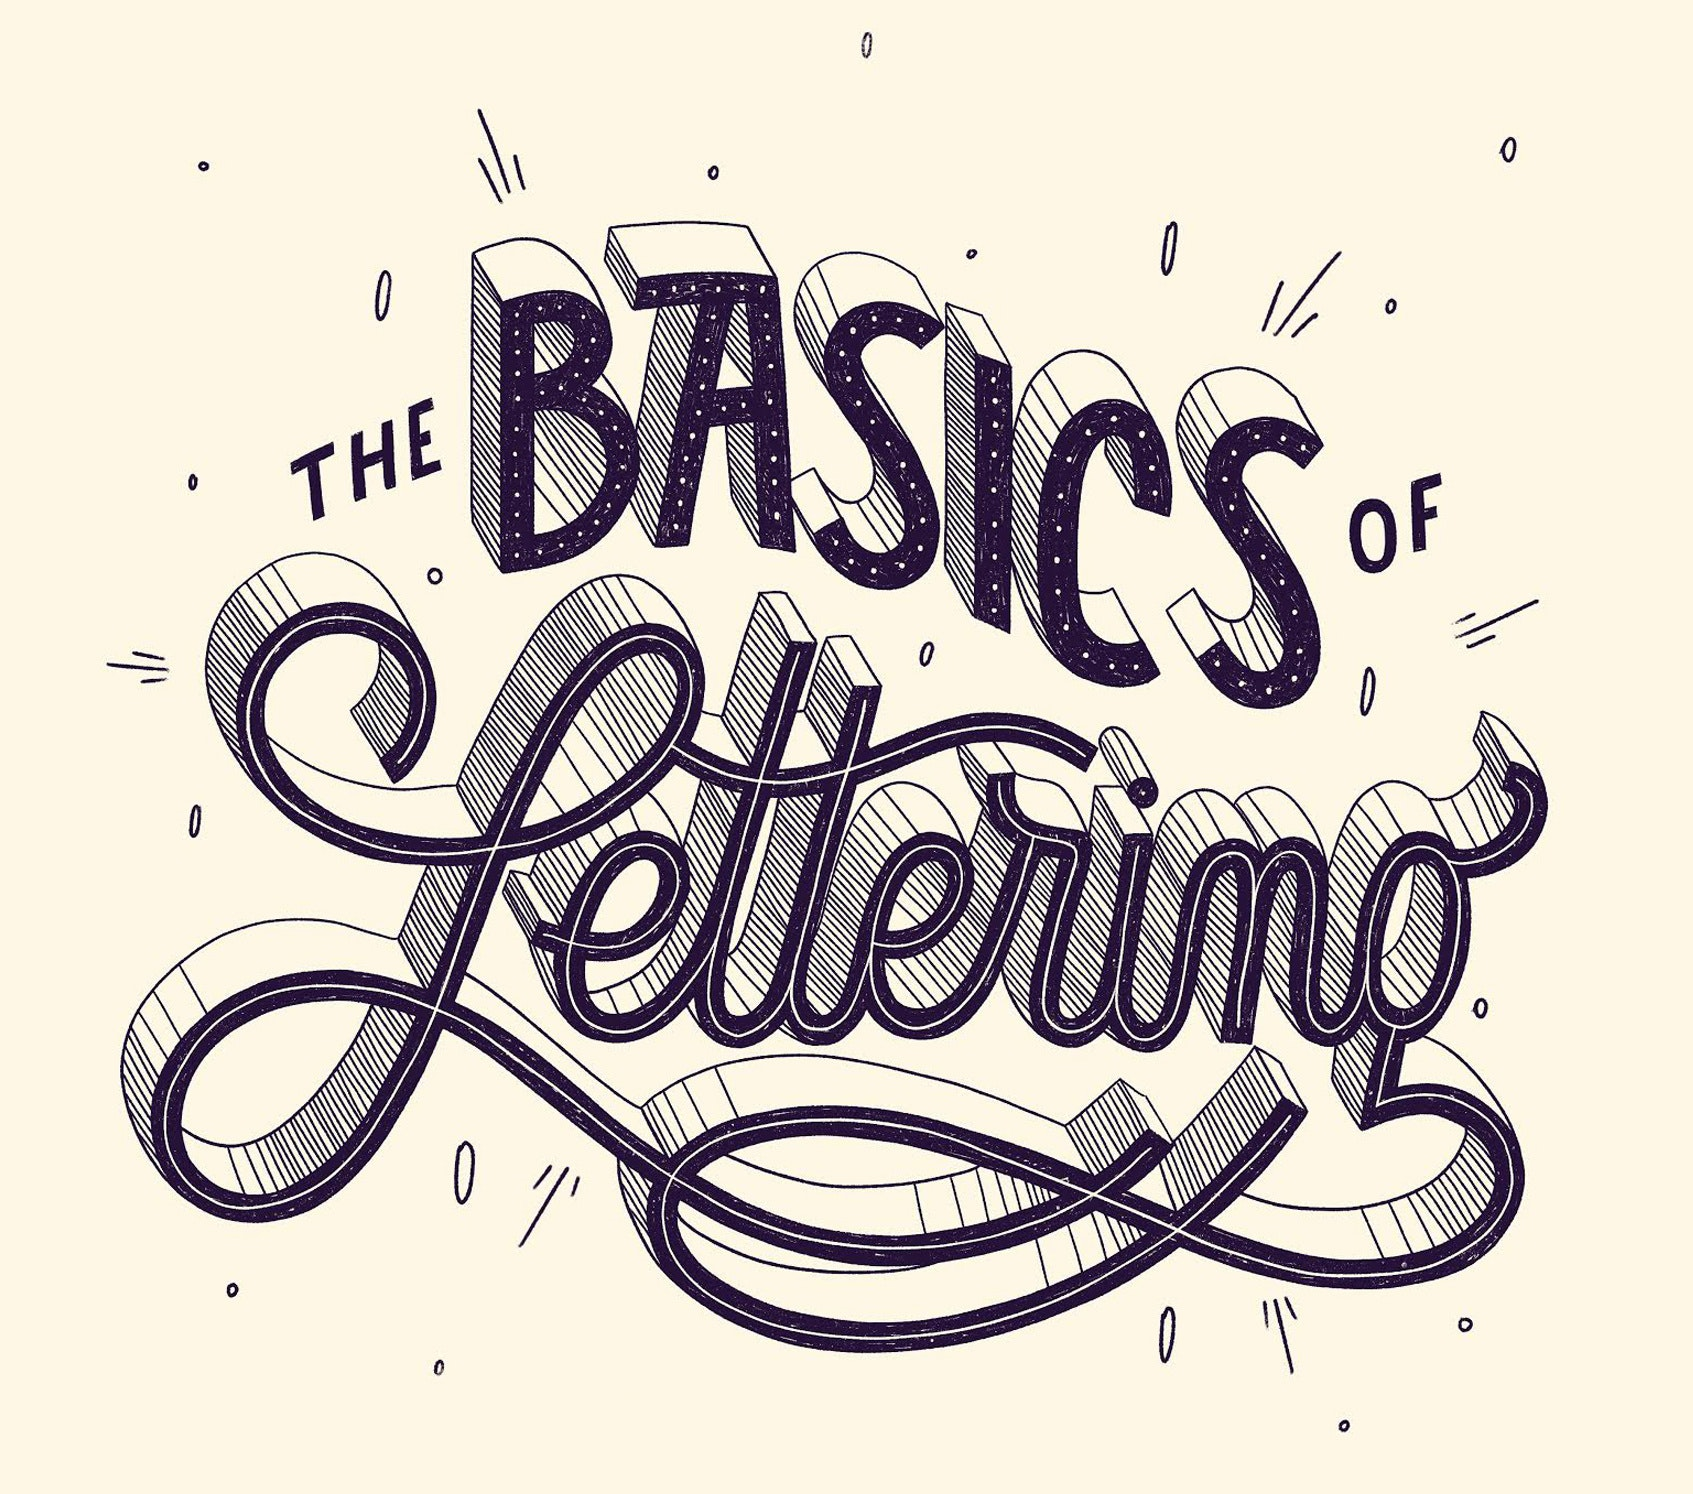 handlettered design by Mky